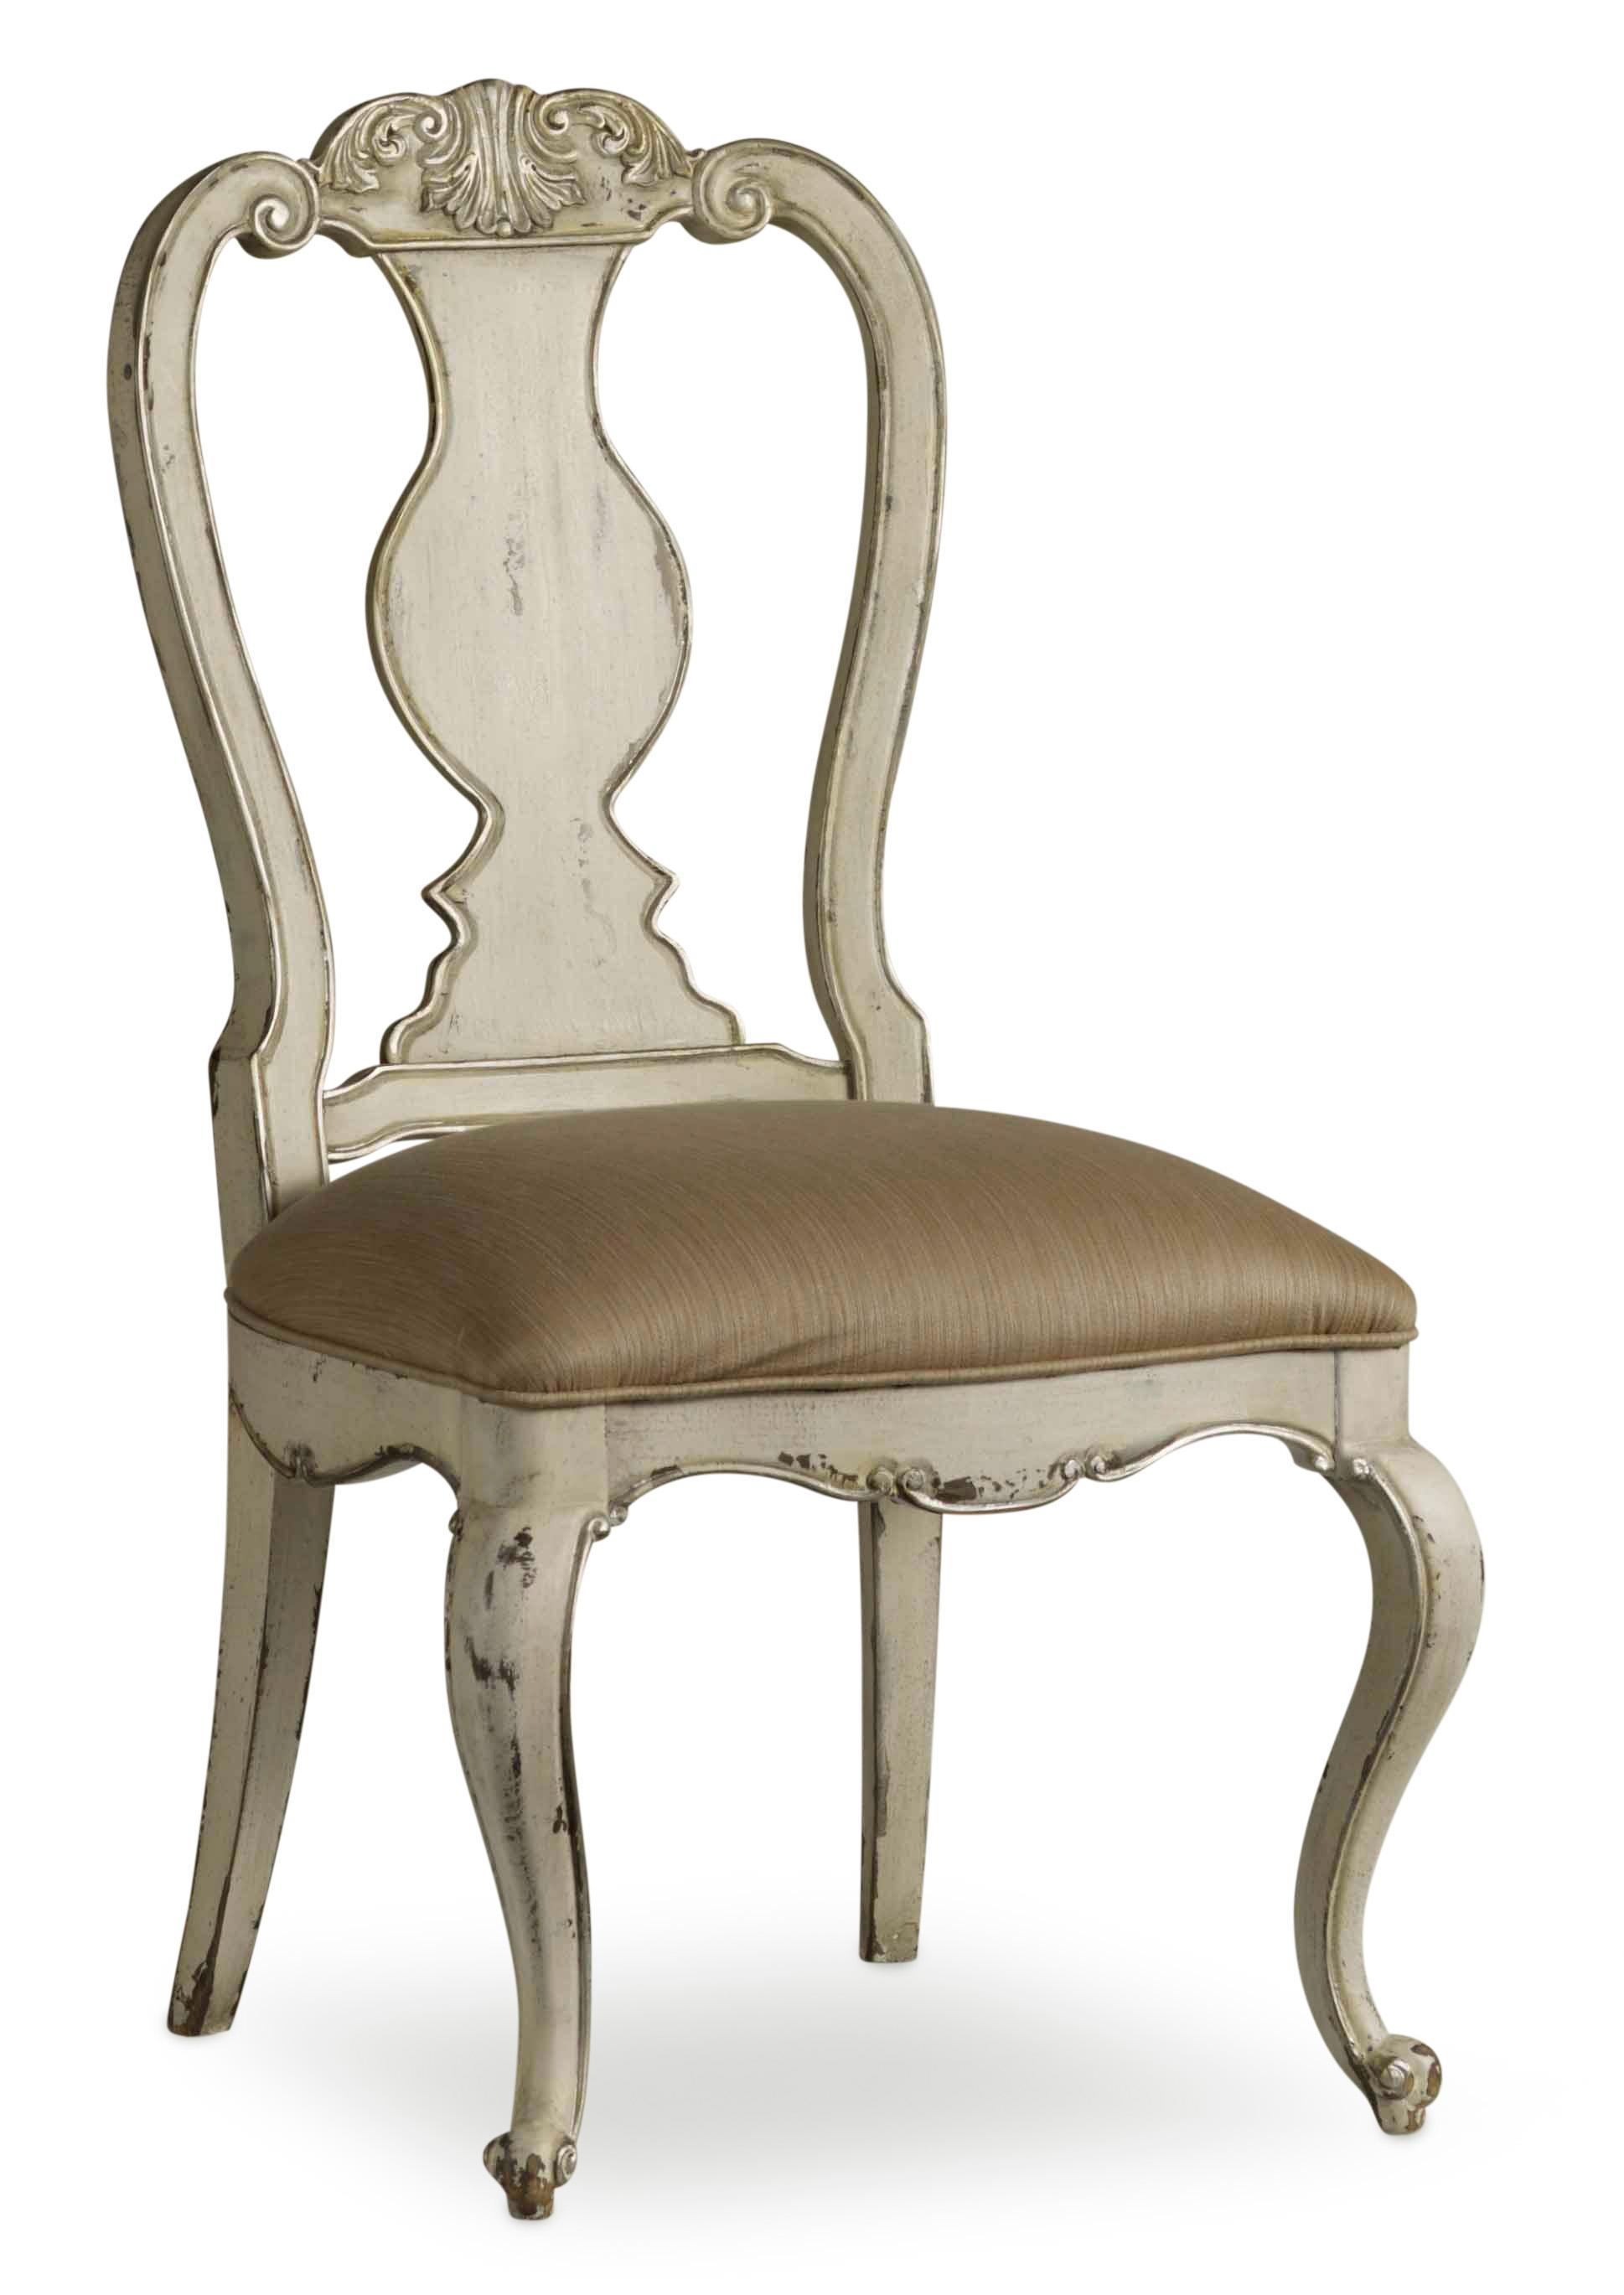 Hooker Furniture La Maison du Travial Urn Back Desk Chair - Item Number: 5437-30310